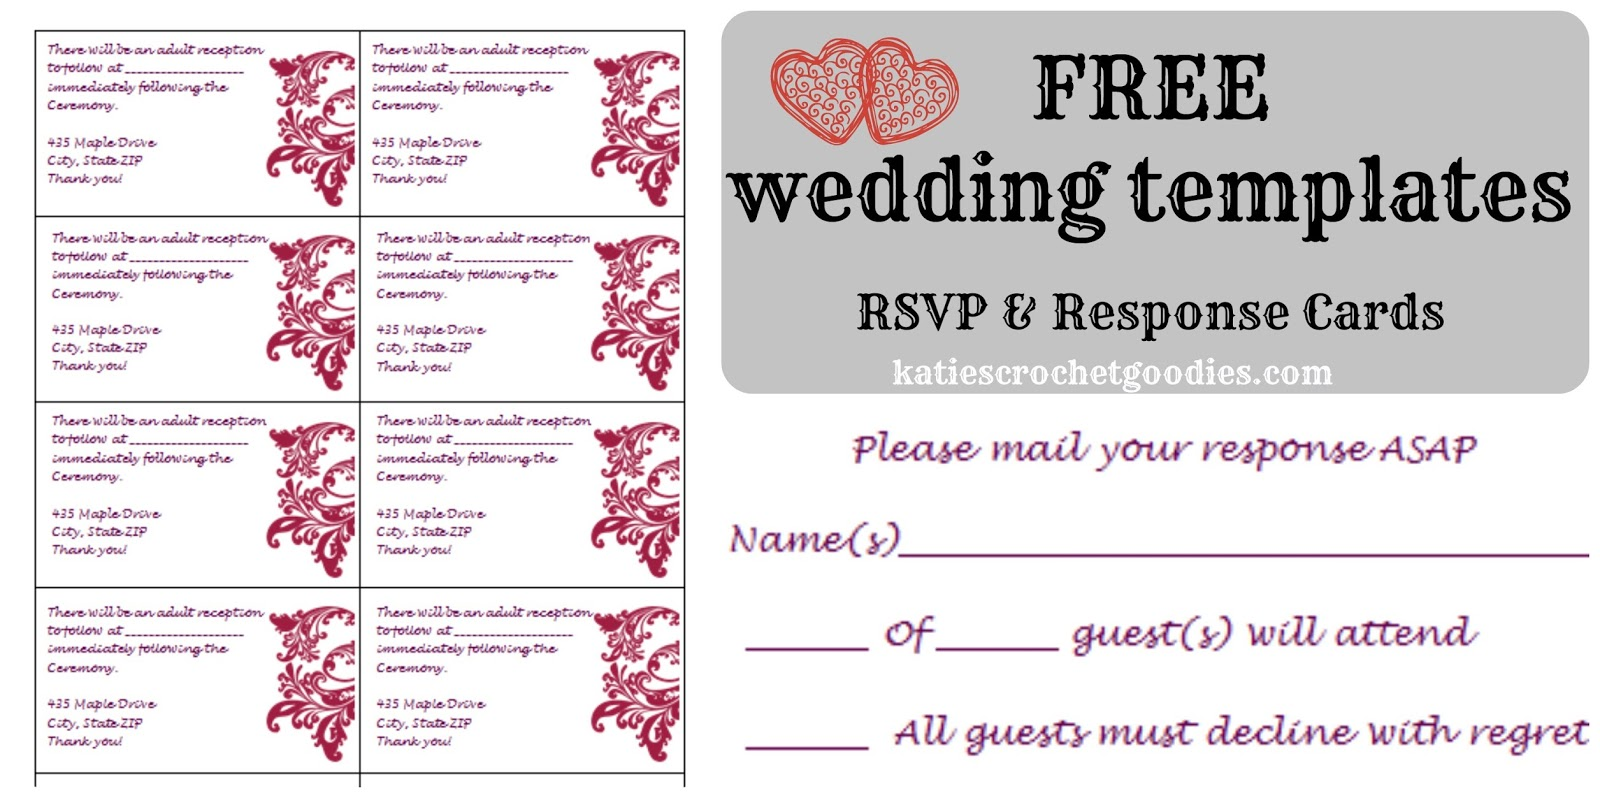 rsvp cards for weddings templates free - Leon.escapers.co